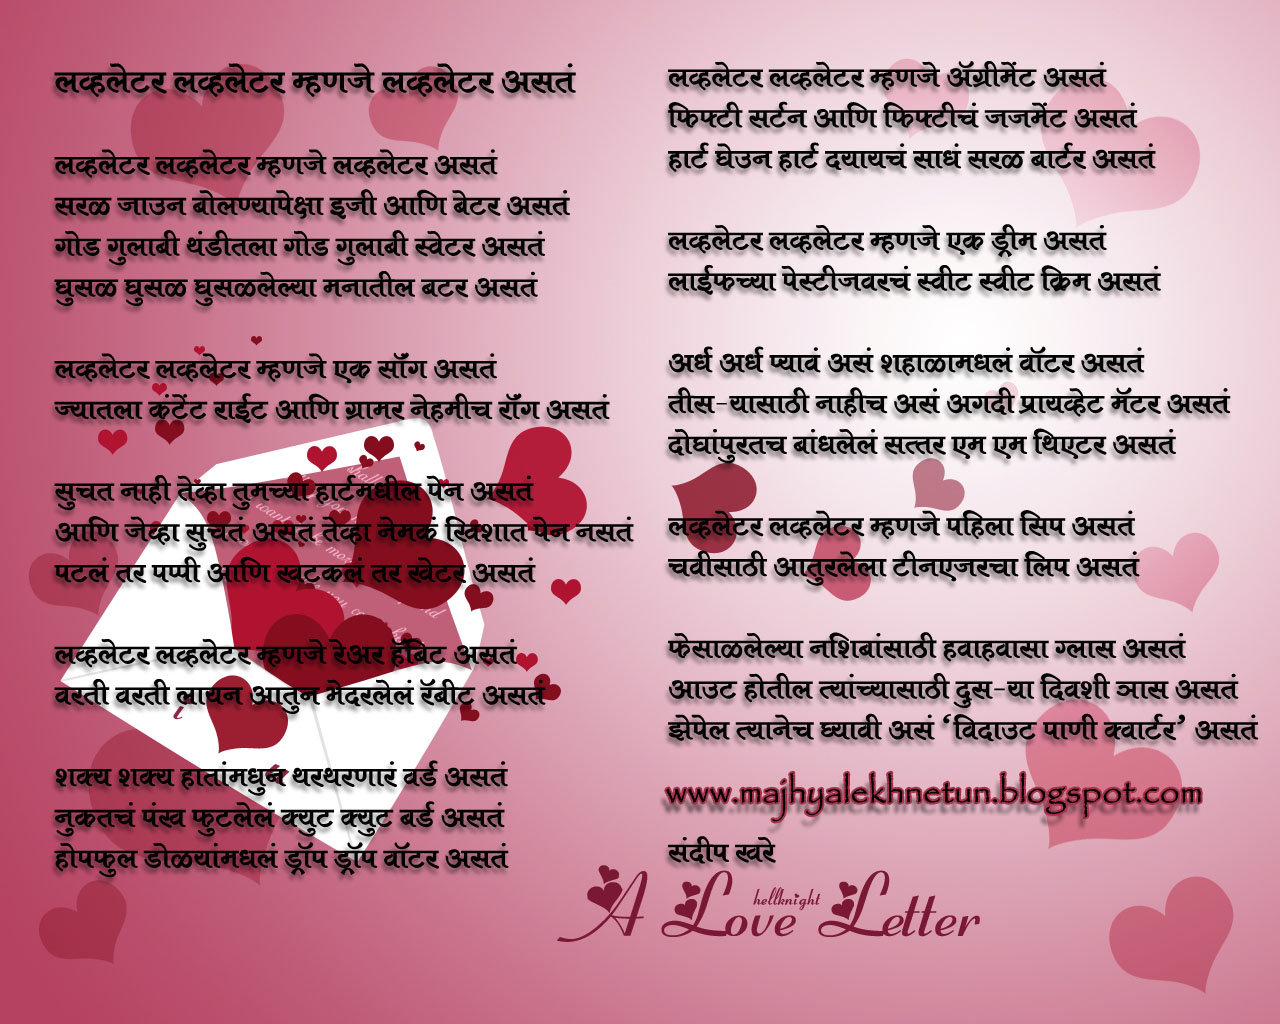 Love letter format in hindi for girlfriend spiritdancerdesigns Images